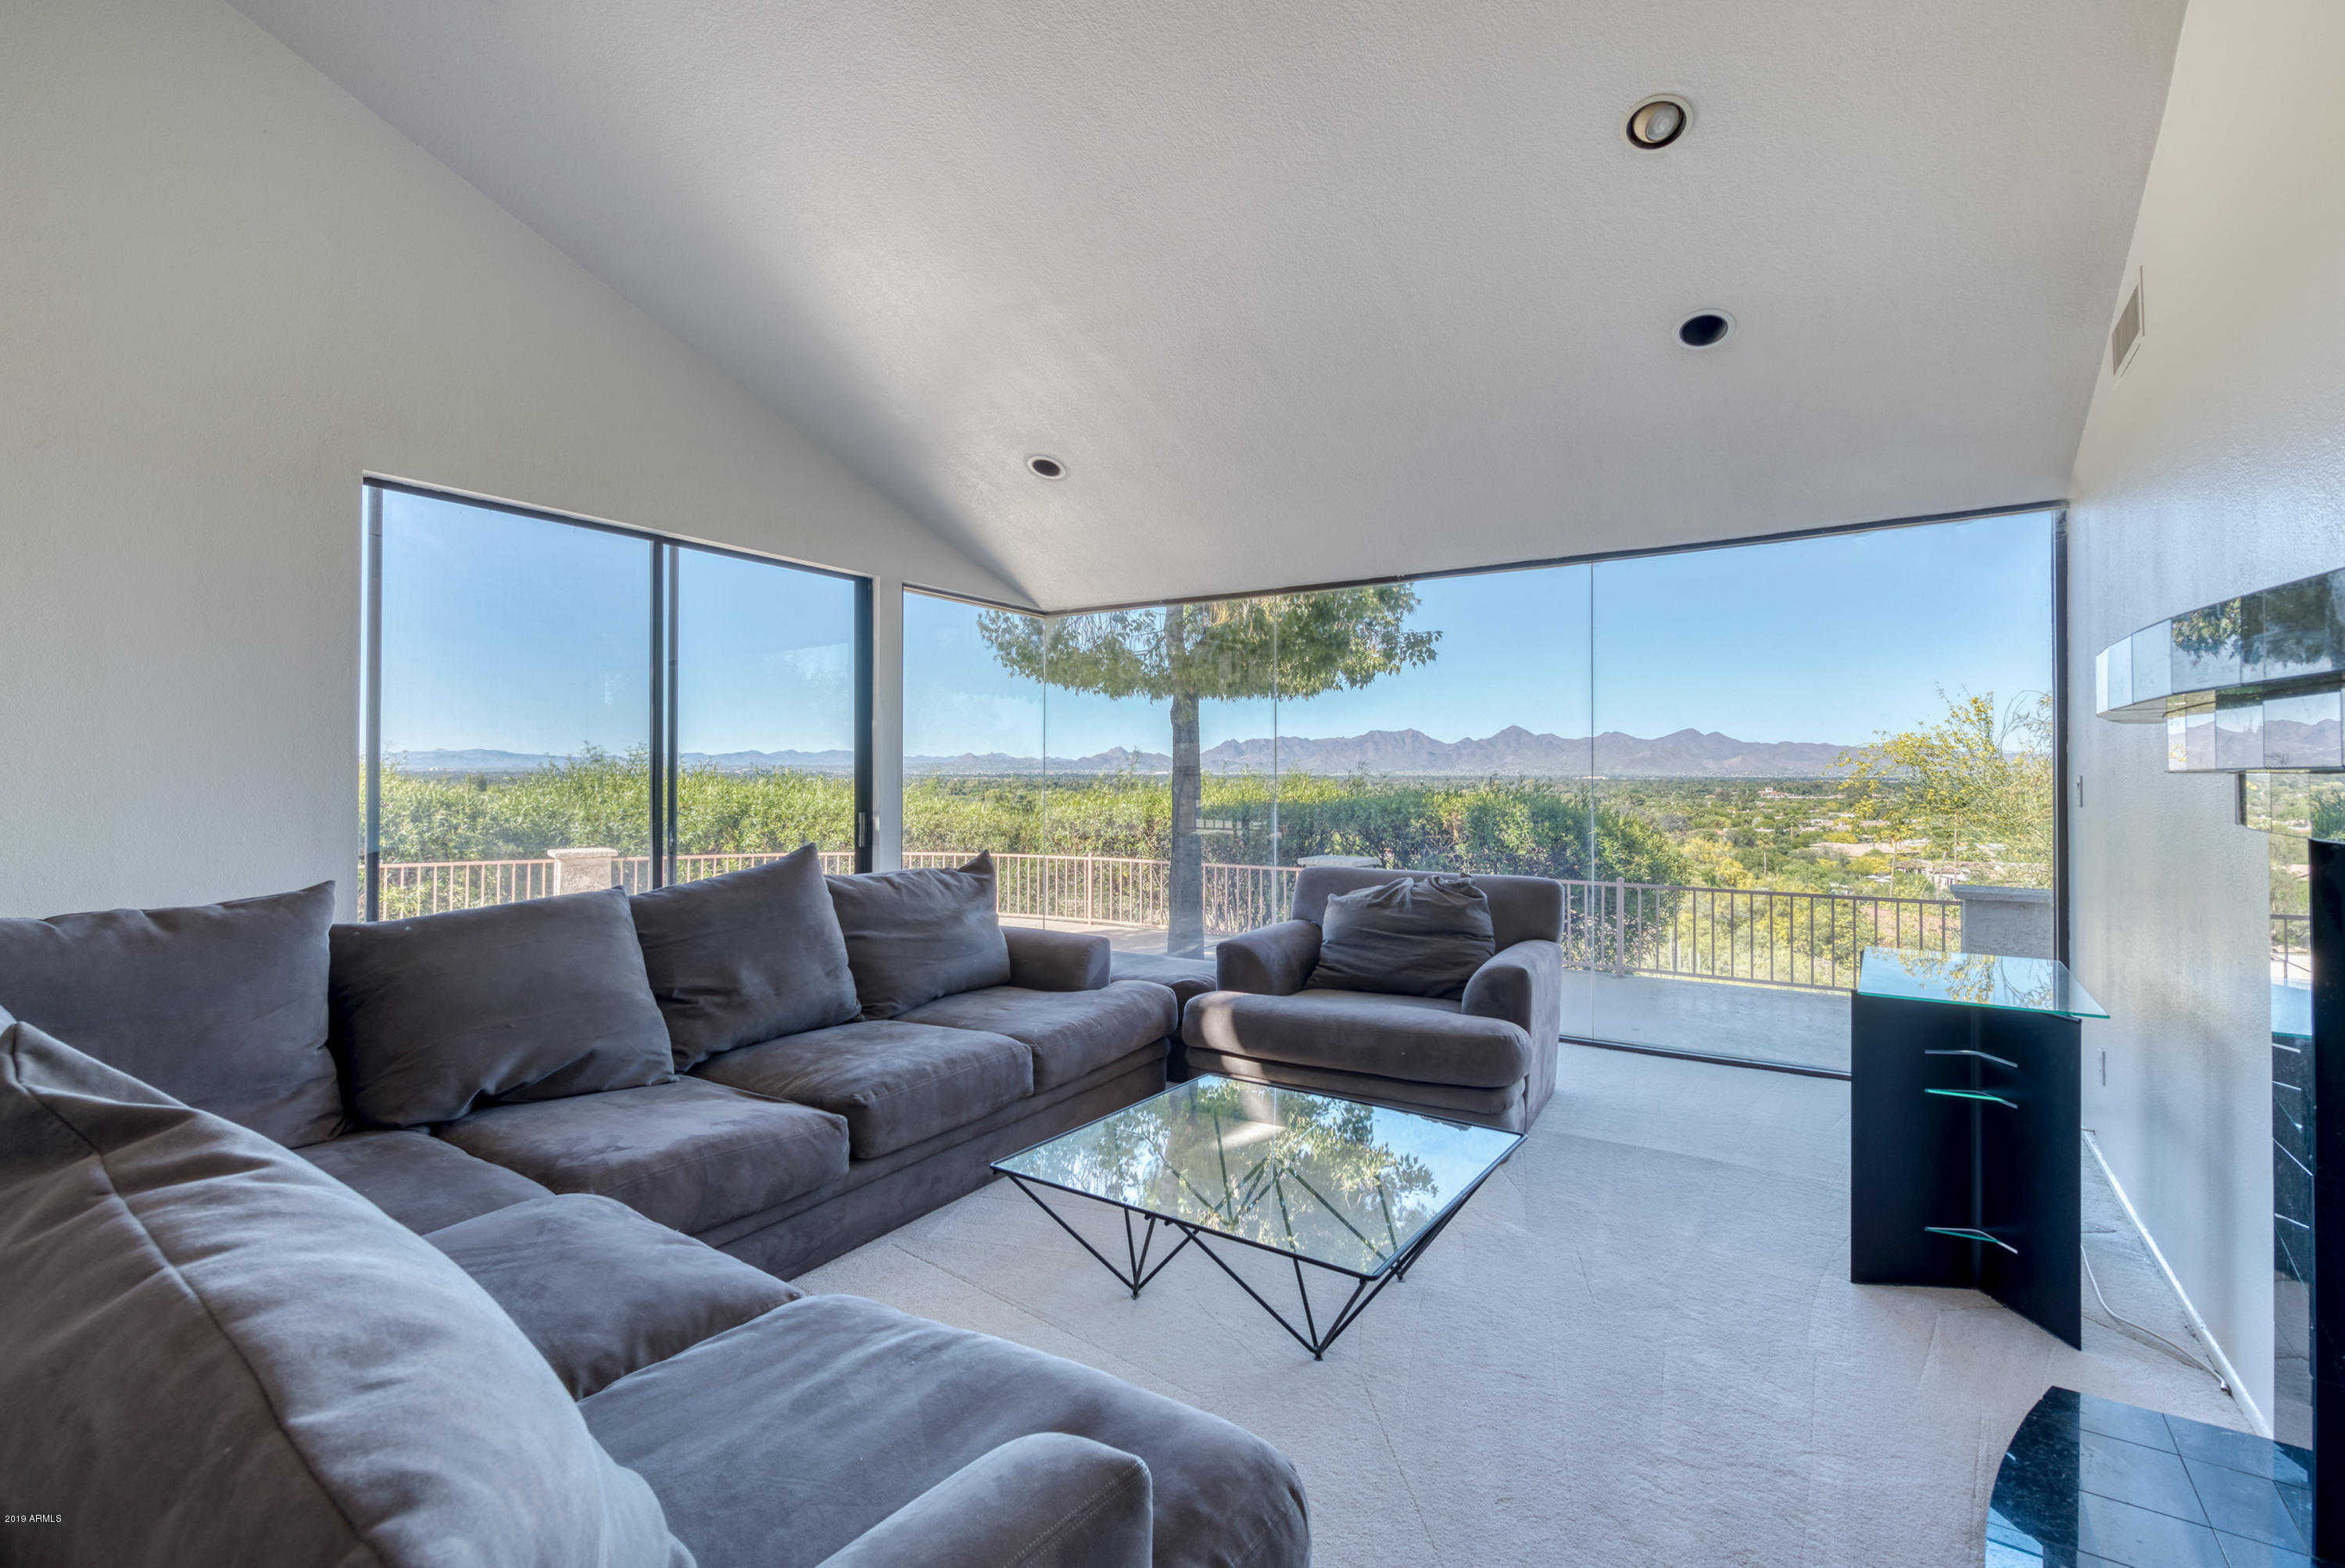 $1,795,000 - 5Br/4Ba - Home for Sale in Hummingbird Vista, Paradise Valley